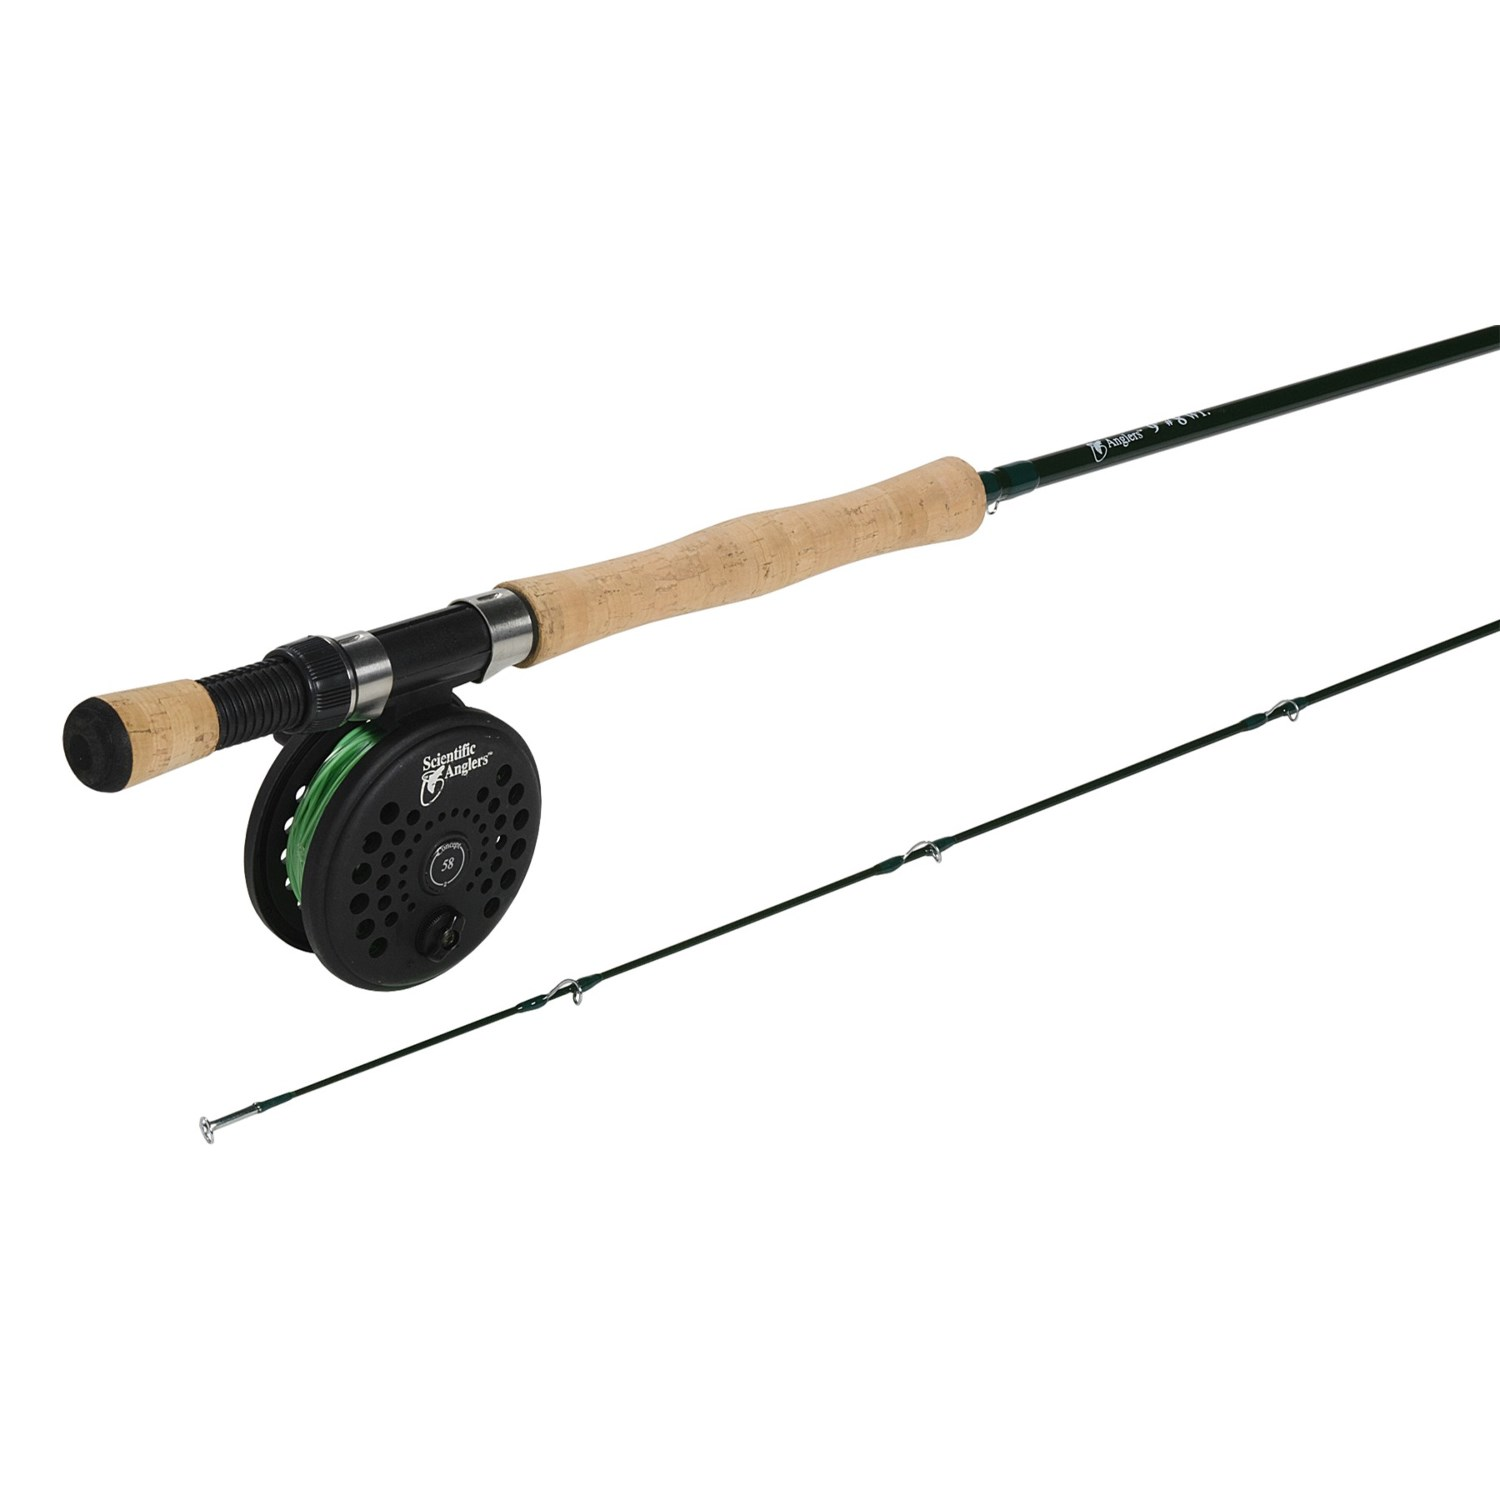 Brand new scientific anglers fly fishing rod and reel for Fly fishing combo